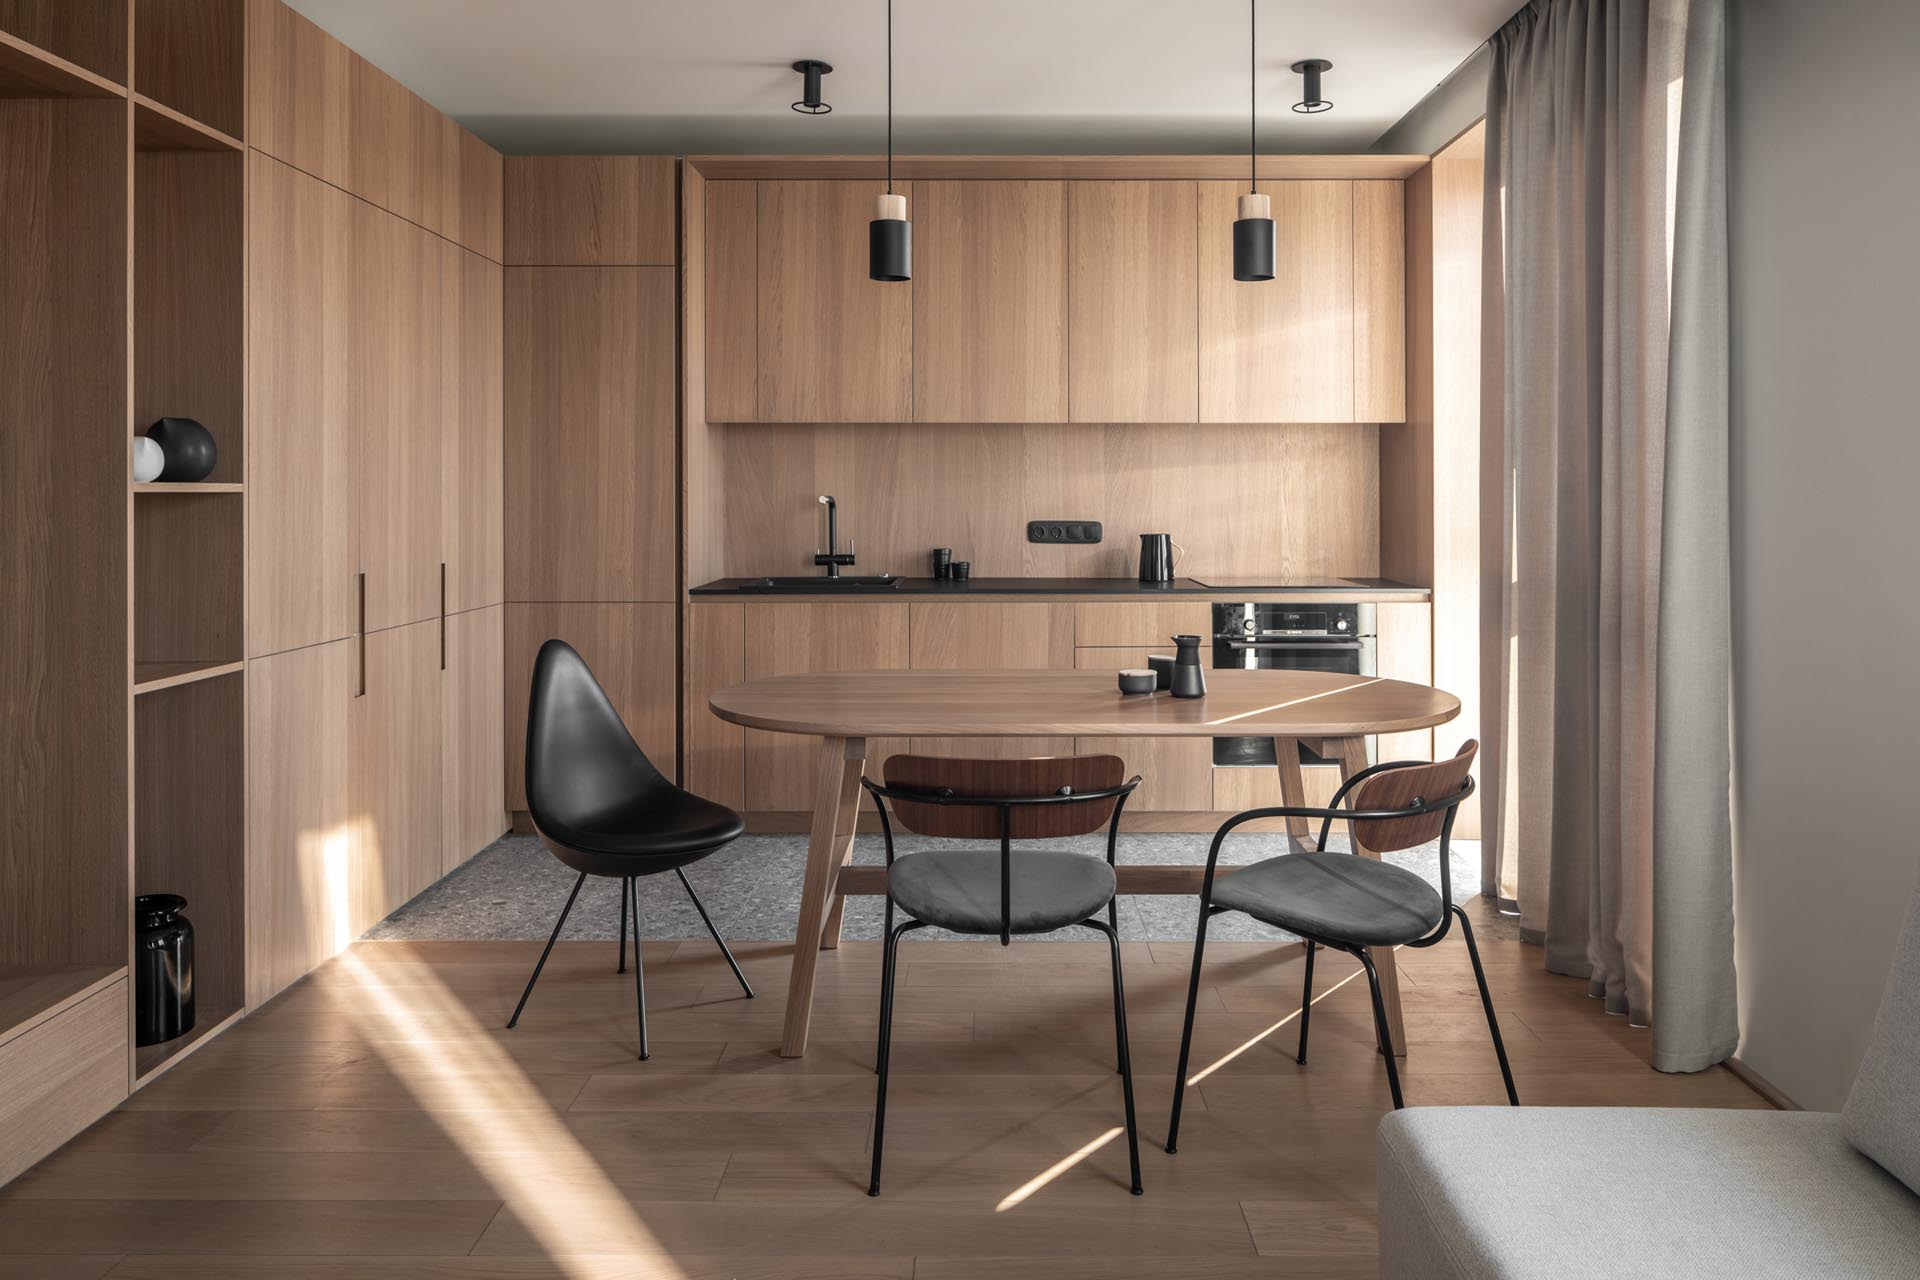 A modern wood kitchen with minimalist cabinets, black hardware, and an eat-in dining table.